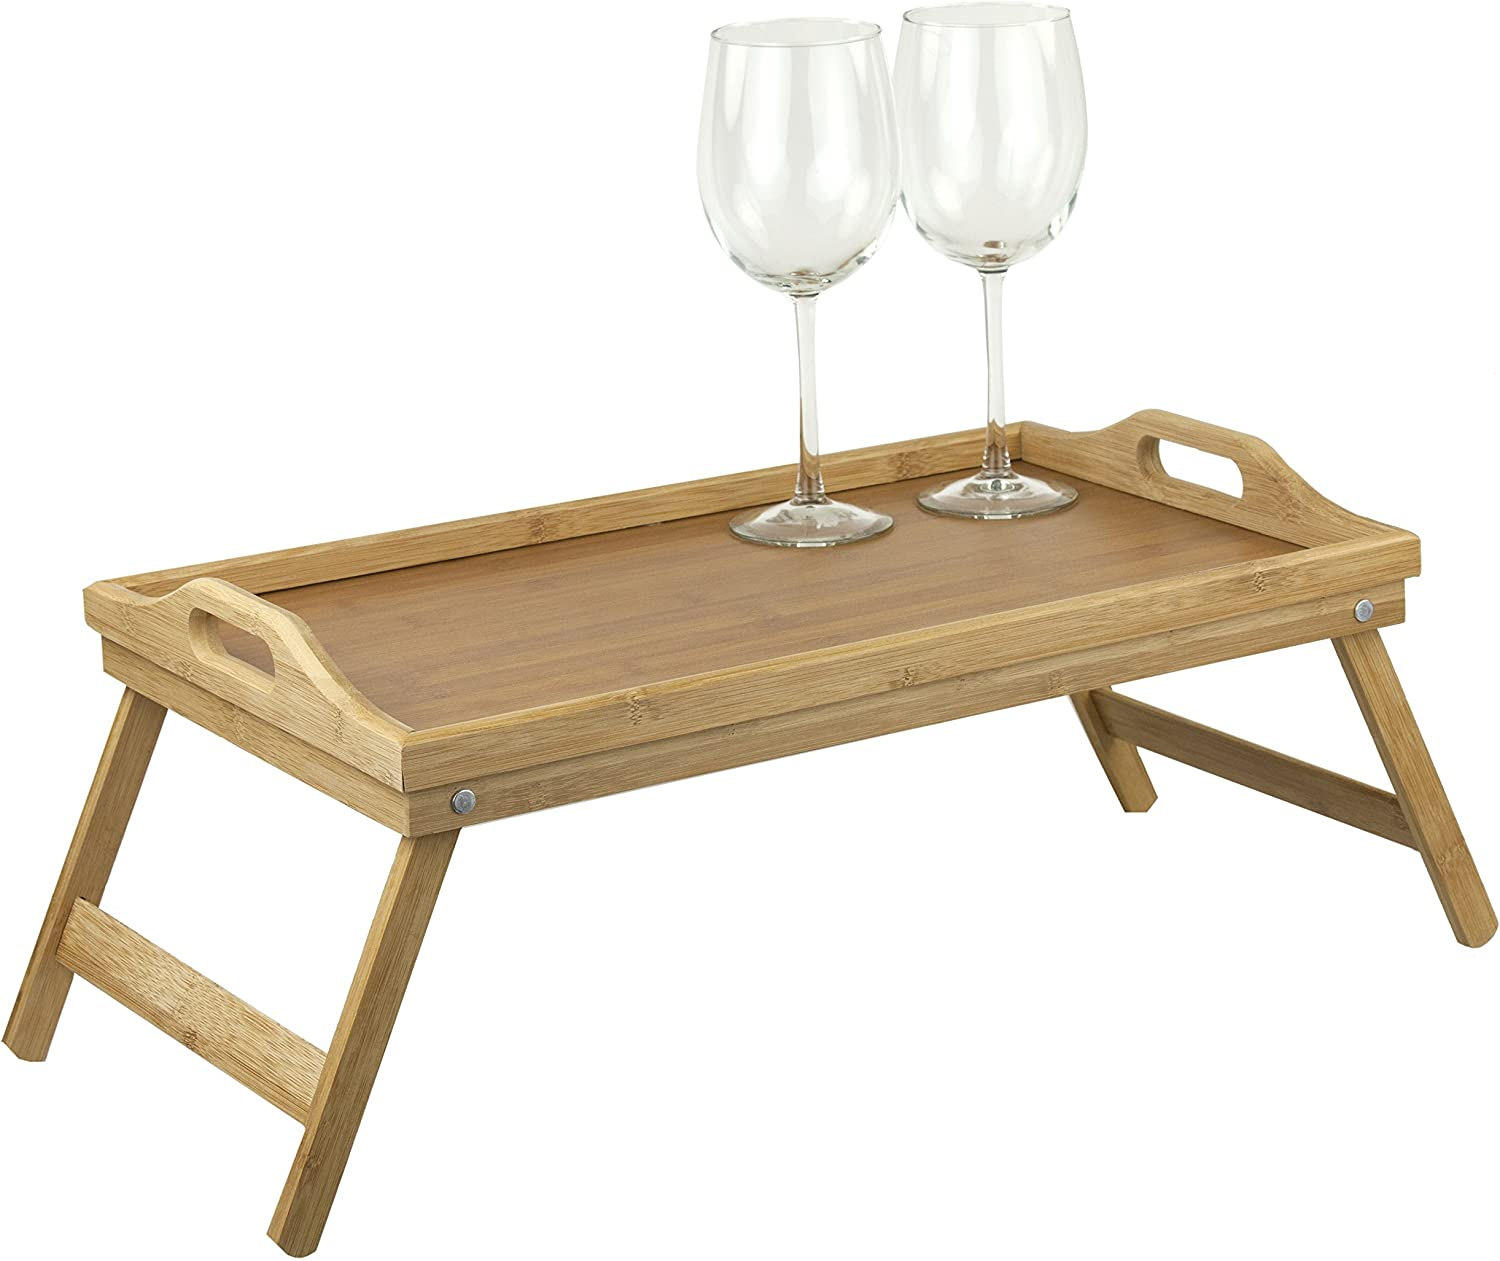 Home Basics Bamboo Breakfast Bed Tray, Natural